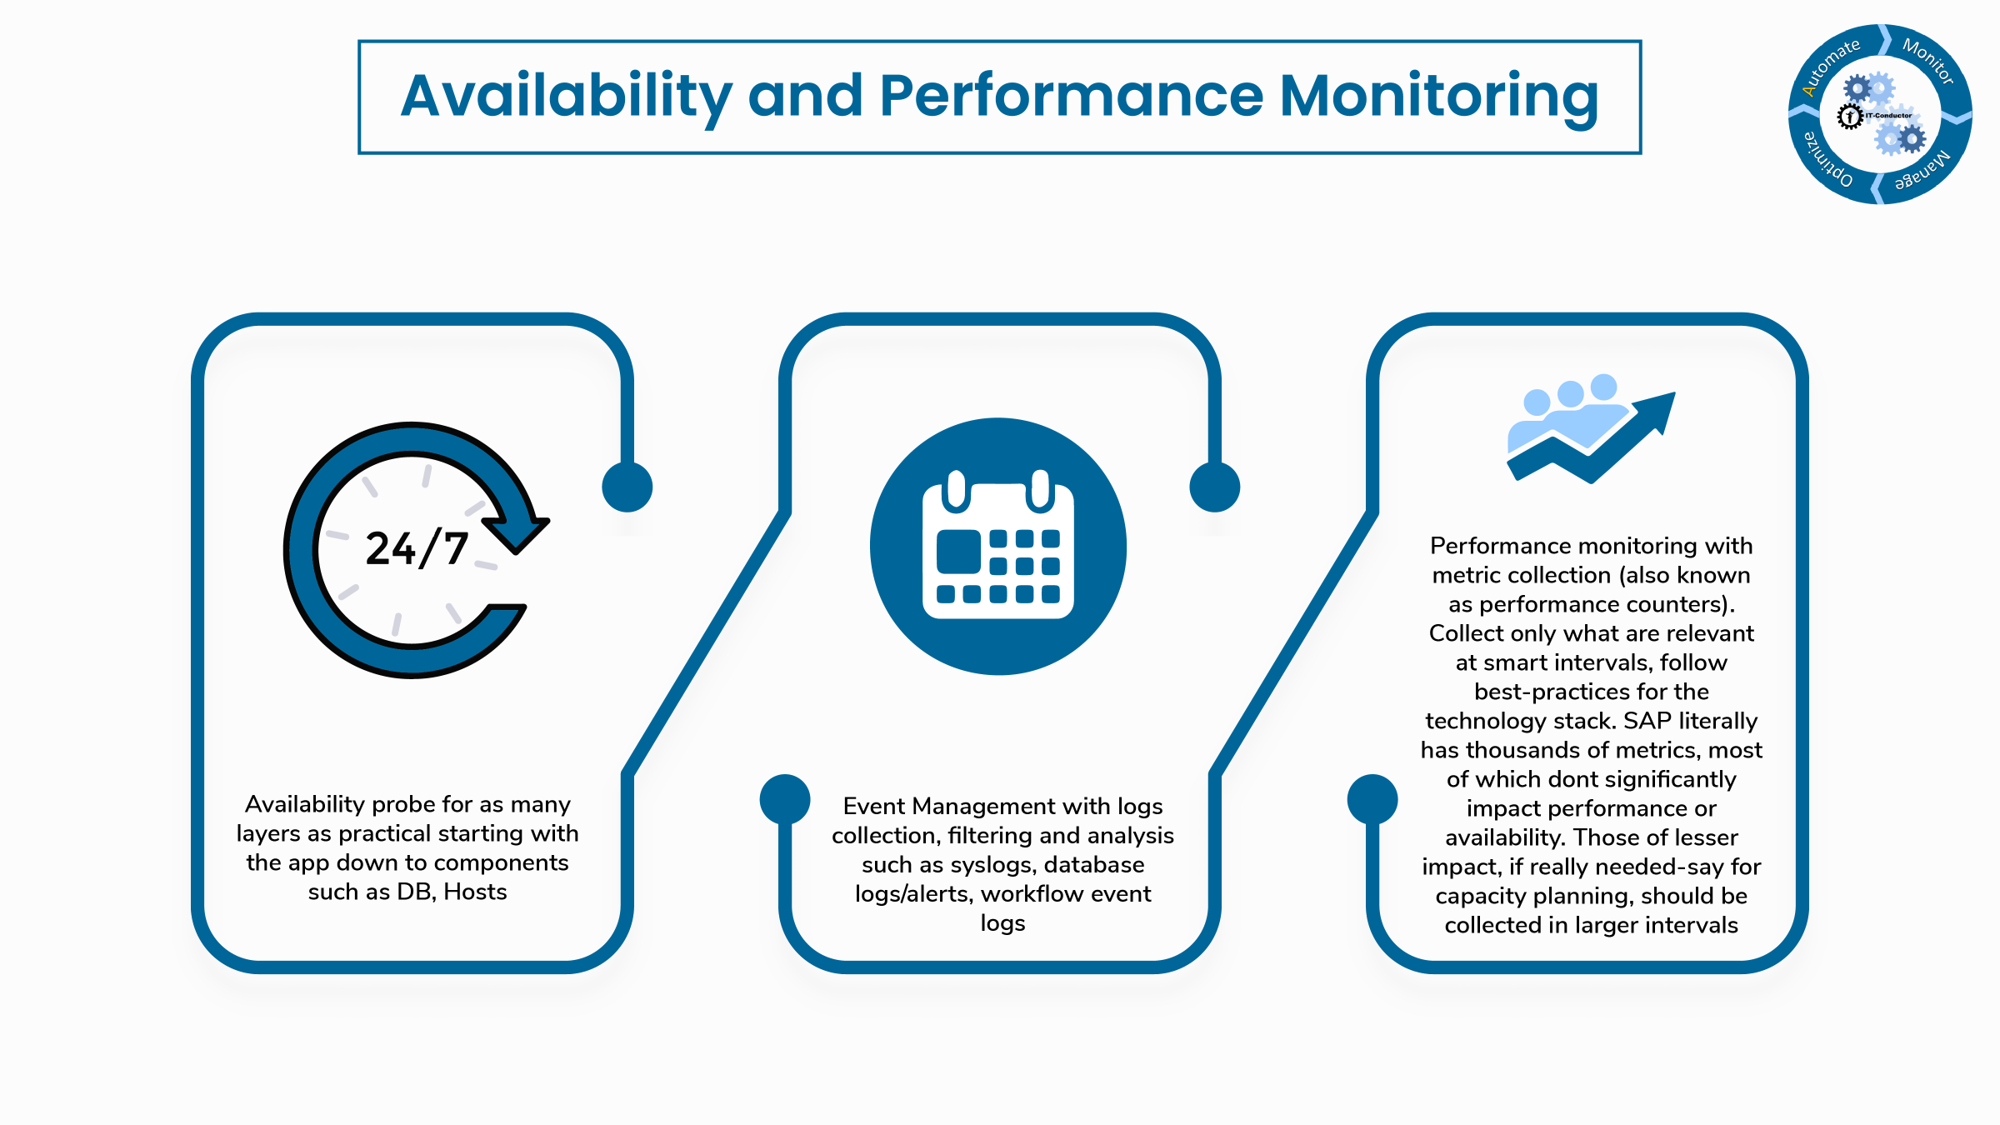 cc72d93a ozsoft itc availabilityandperformancemonitoring